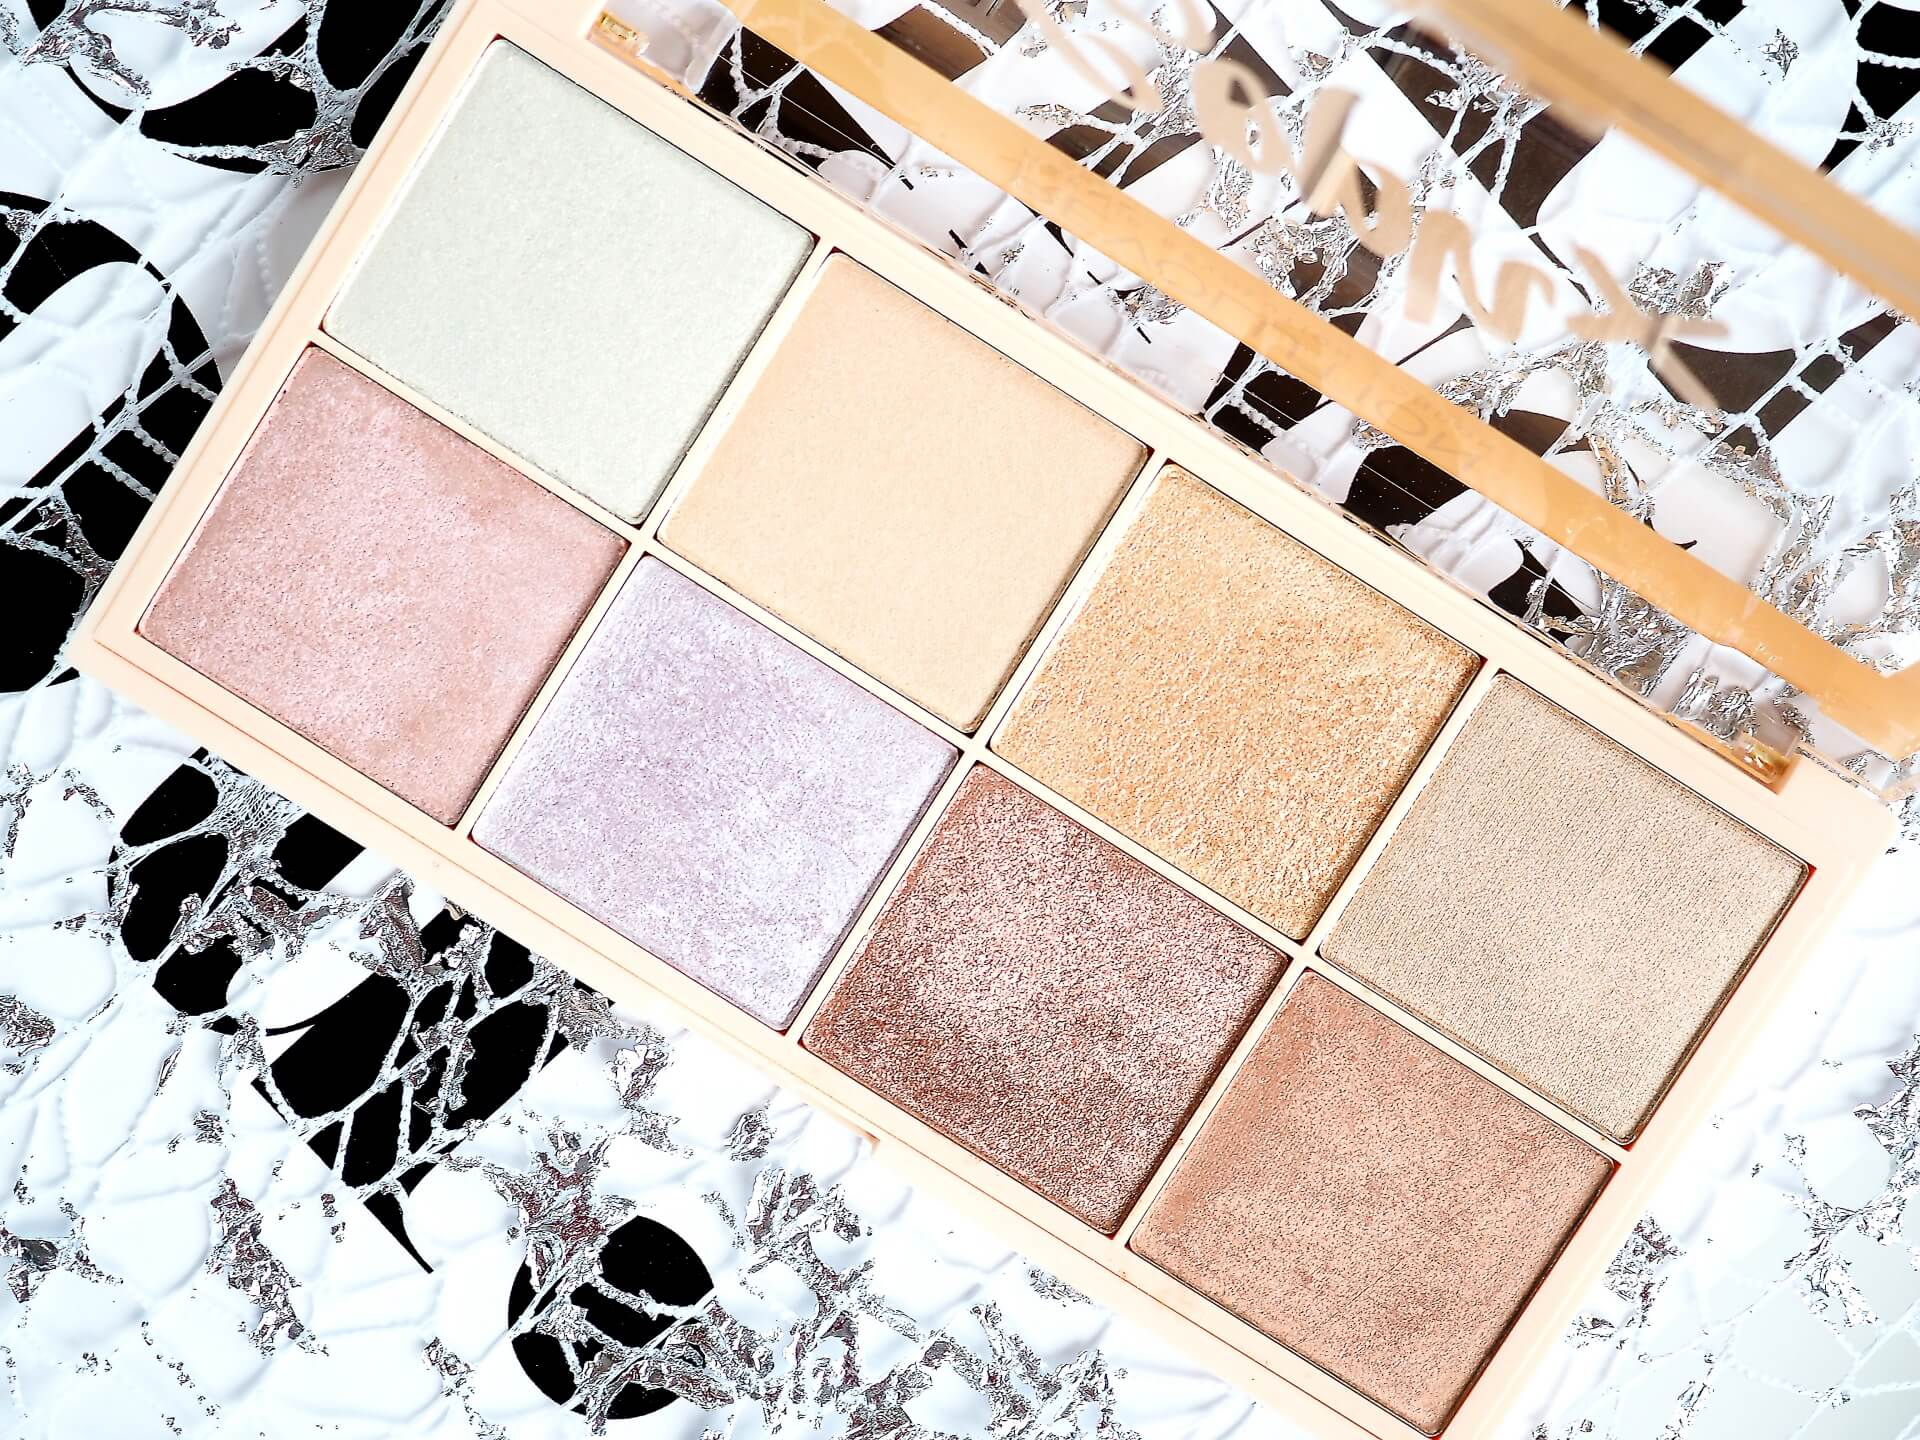 RECENZJA SOPH X MAKEUP REVOLUTION HIGHLIGHTER PALETTE